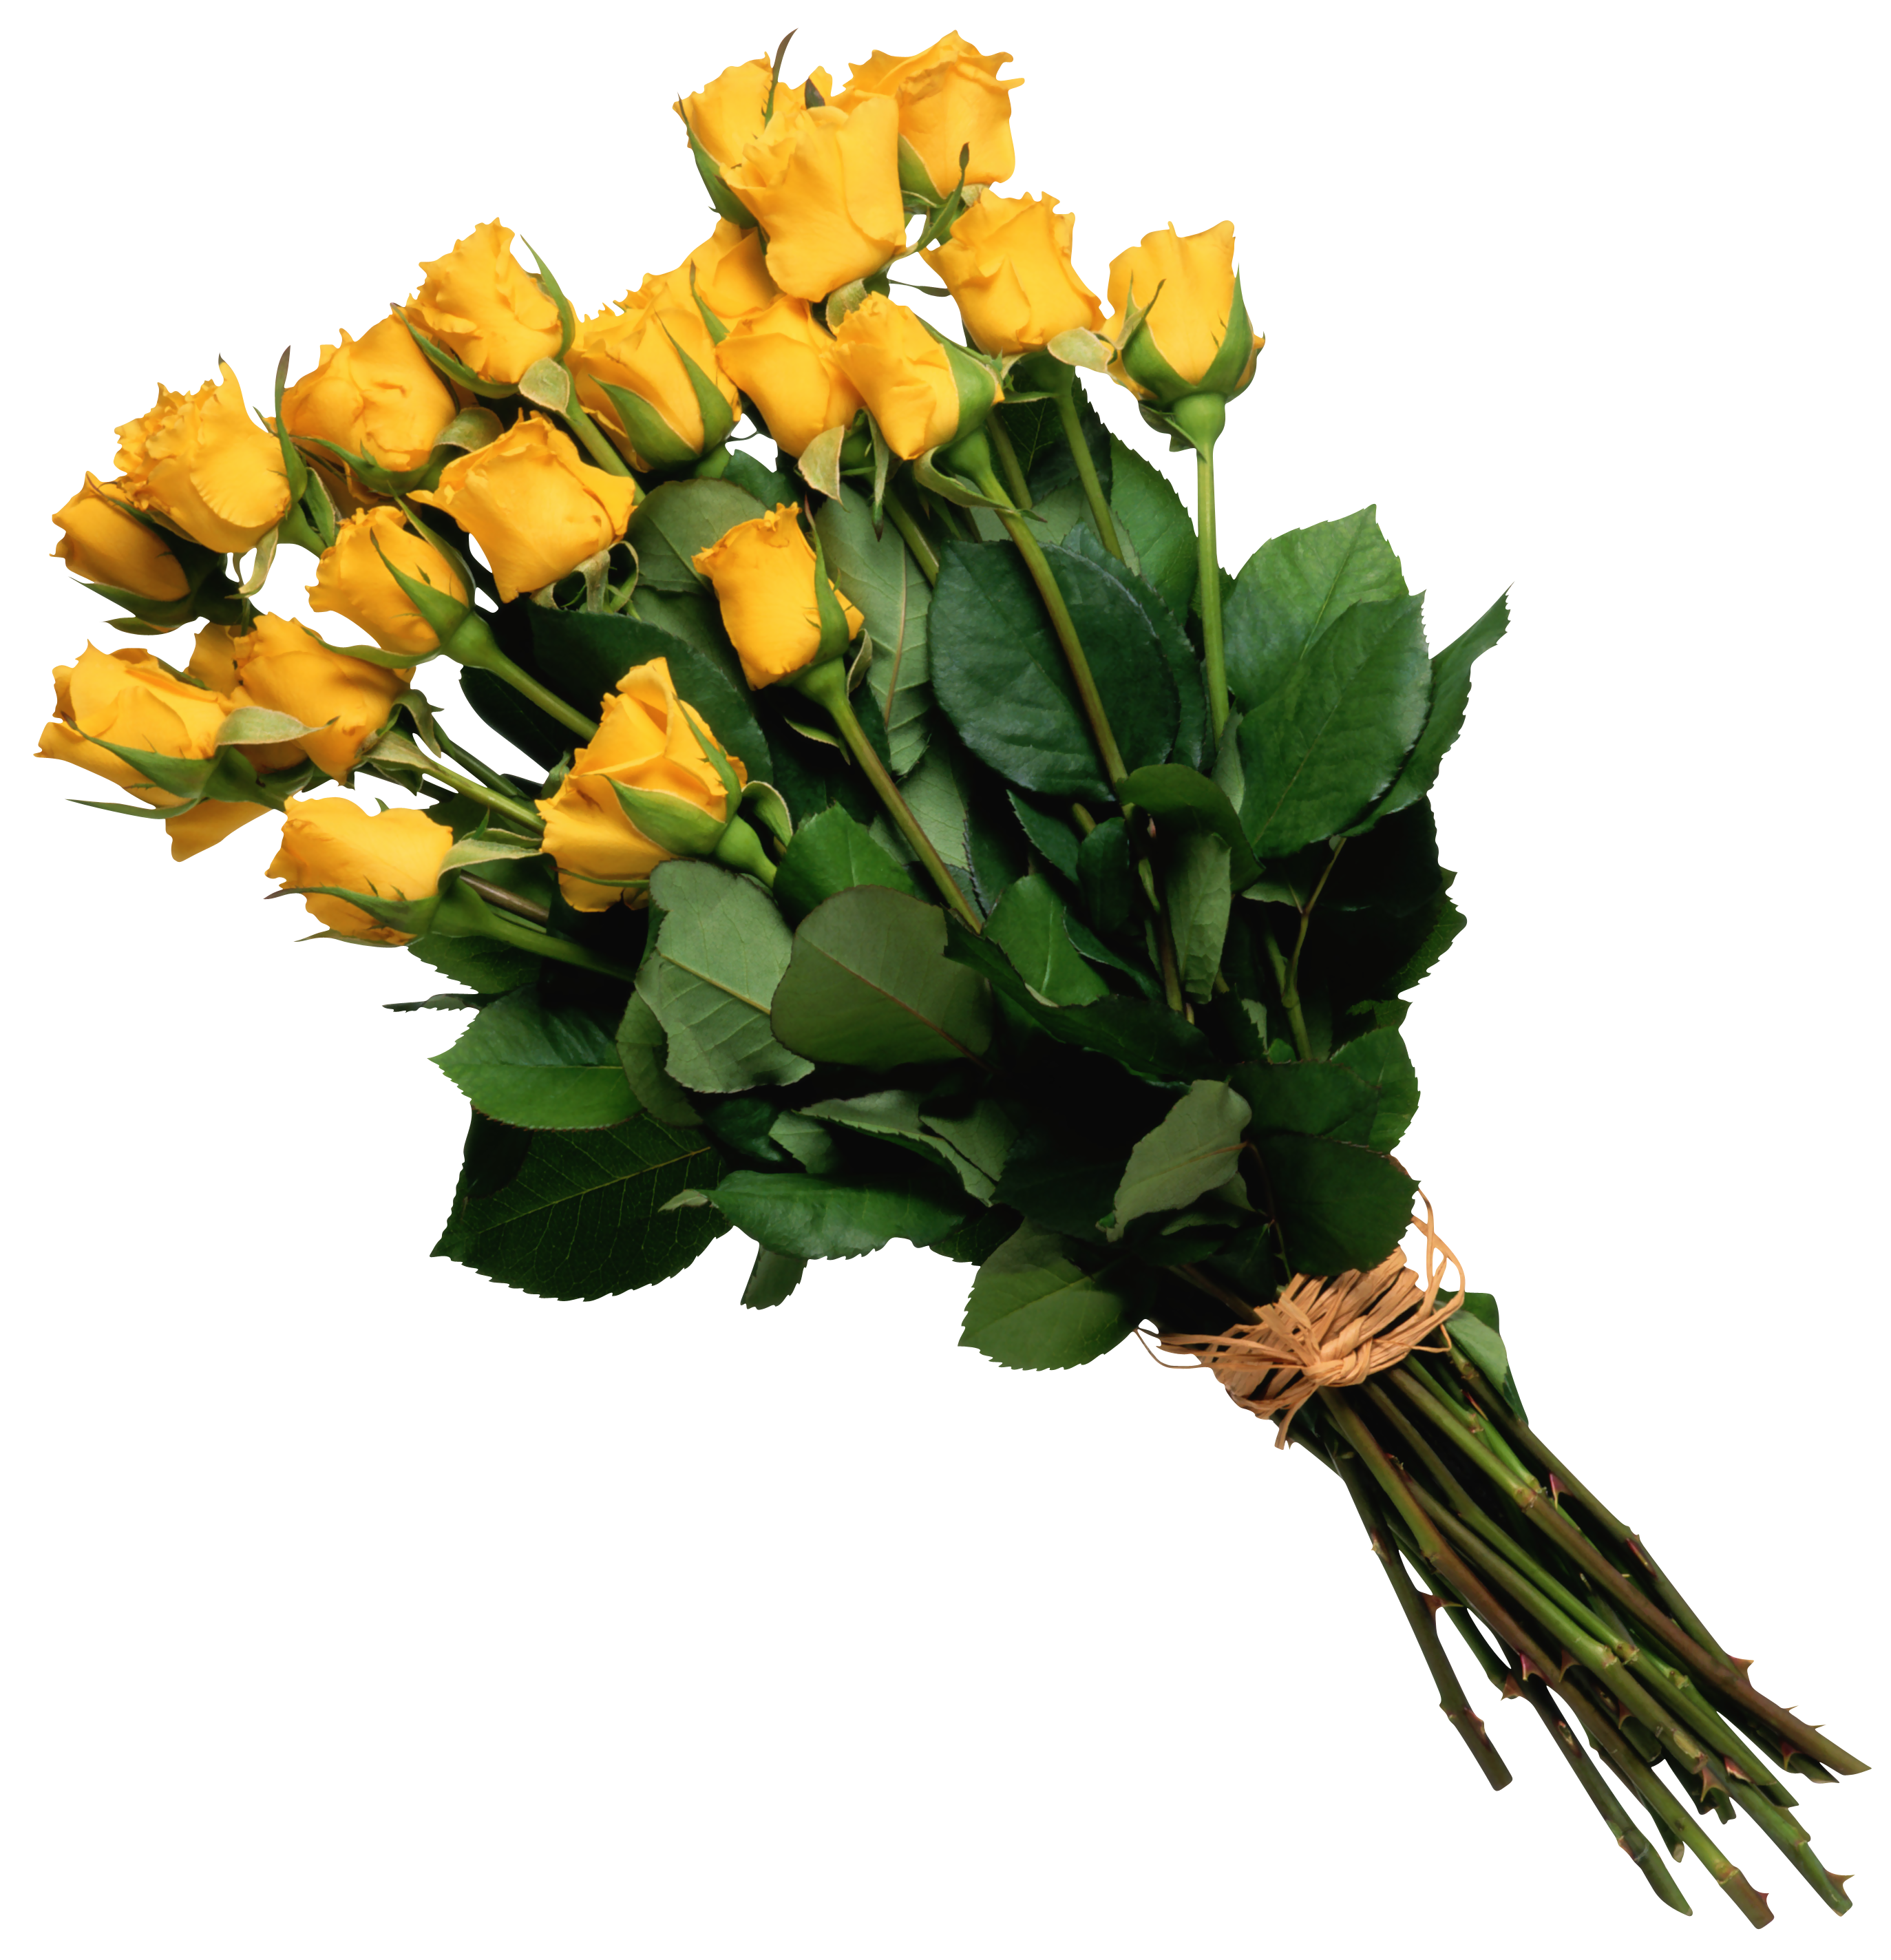 Yellow_Rose_Bouquet_PNG_Picture.png (2747×2847) Ramos de